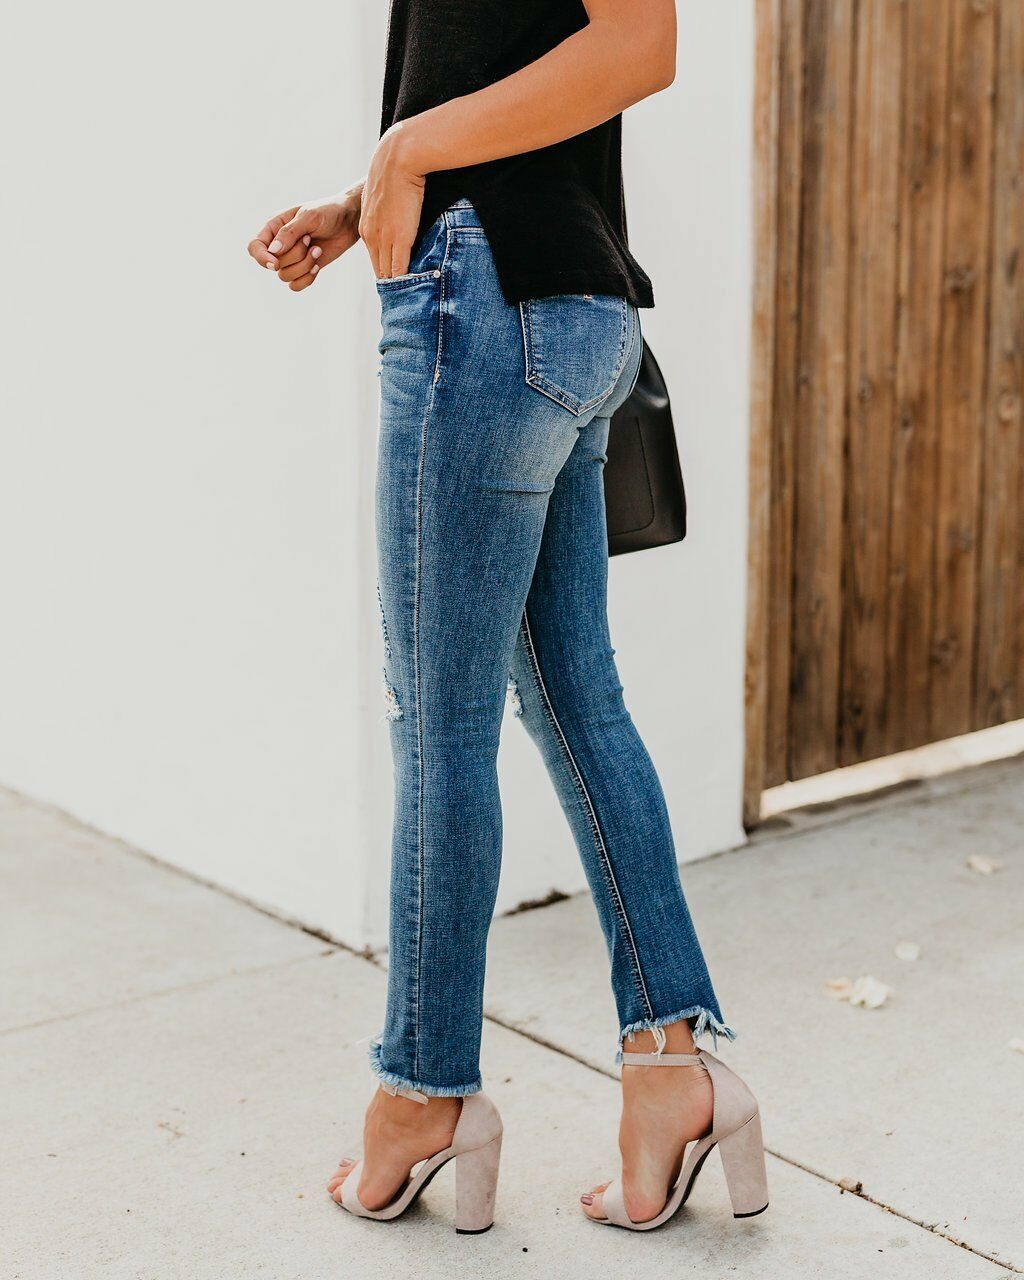 Stretch Ripped Distressed Skinny High Waist Jeans